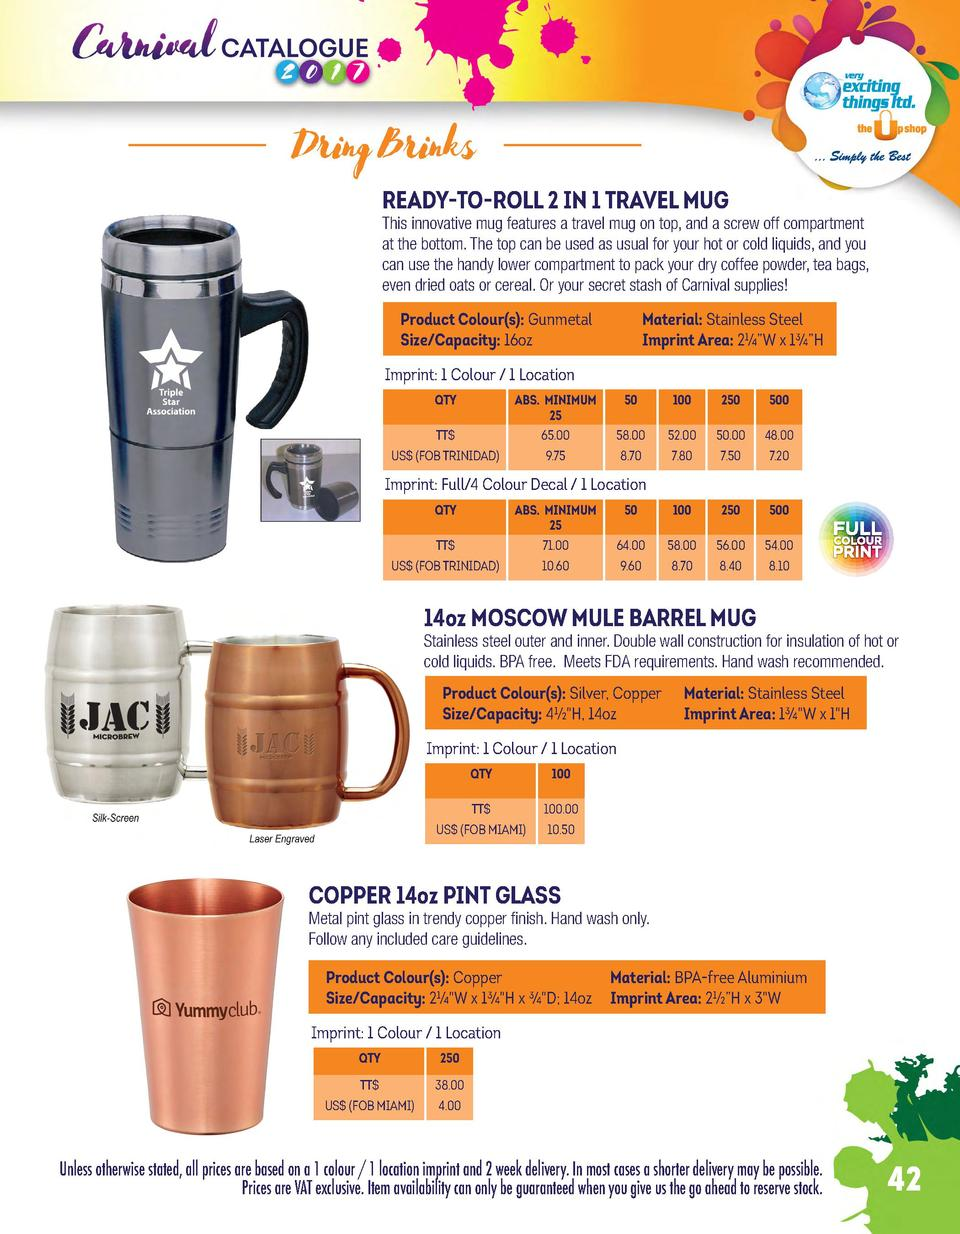 Dring Brinks READY-TO-ROLL 2 IN 1 TRAVEL MUG  This innovative mug features a travel mug on top, and a screw off compartmen...